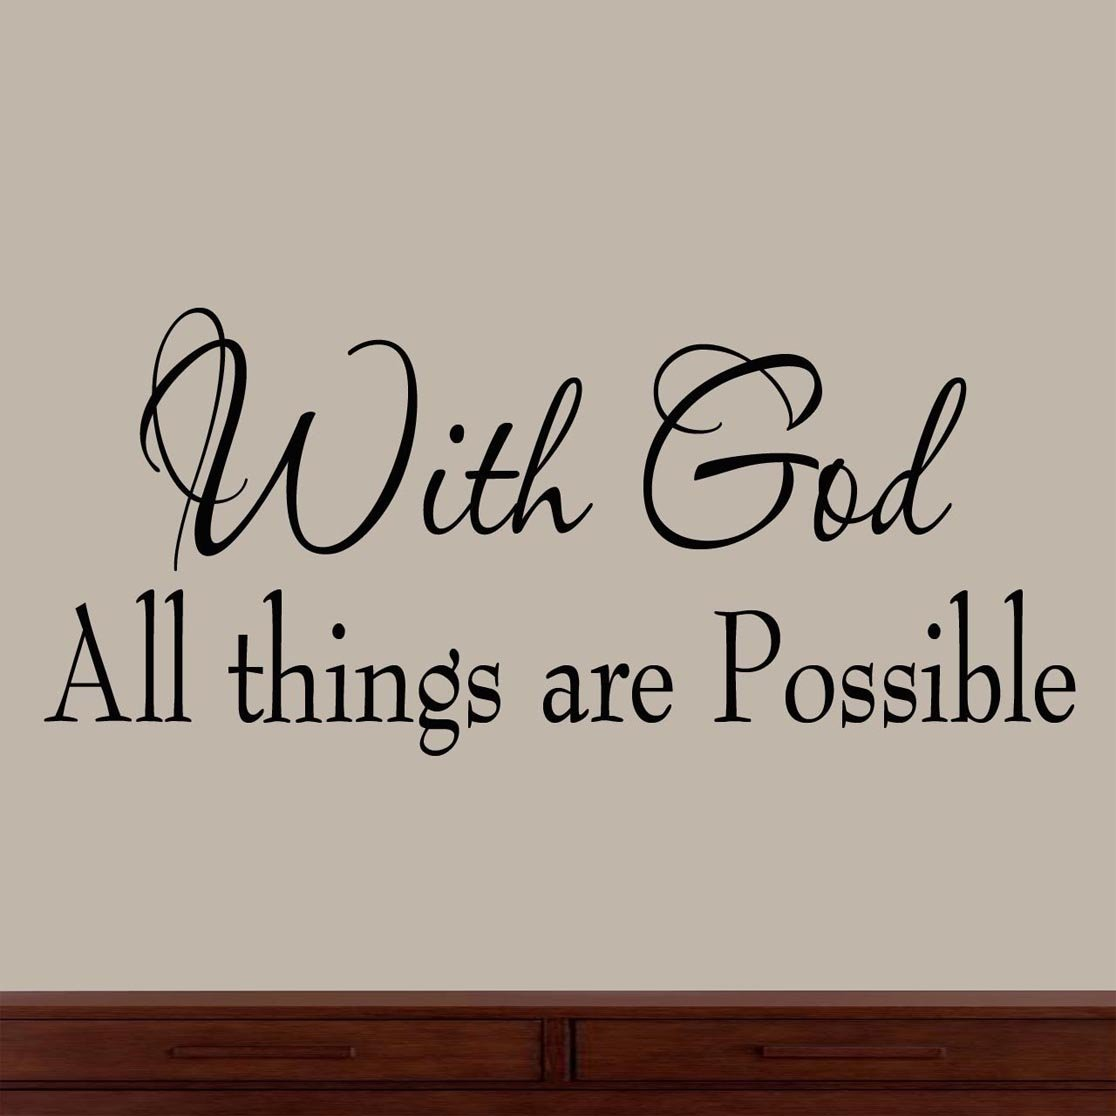 Amazon.com: With God All Things Are Possible Faith Wall Decals Religious  Quotes Family Scripture Home Decor Christian Vinyl Wall Art: Home U0026 Kitchen